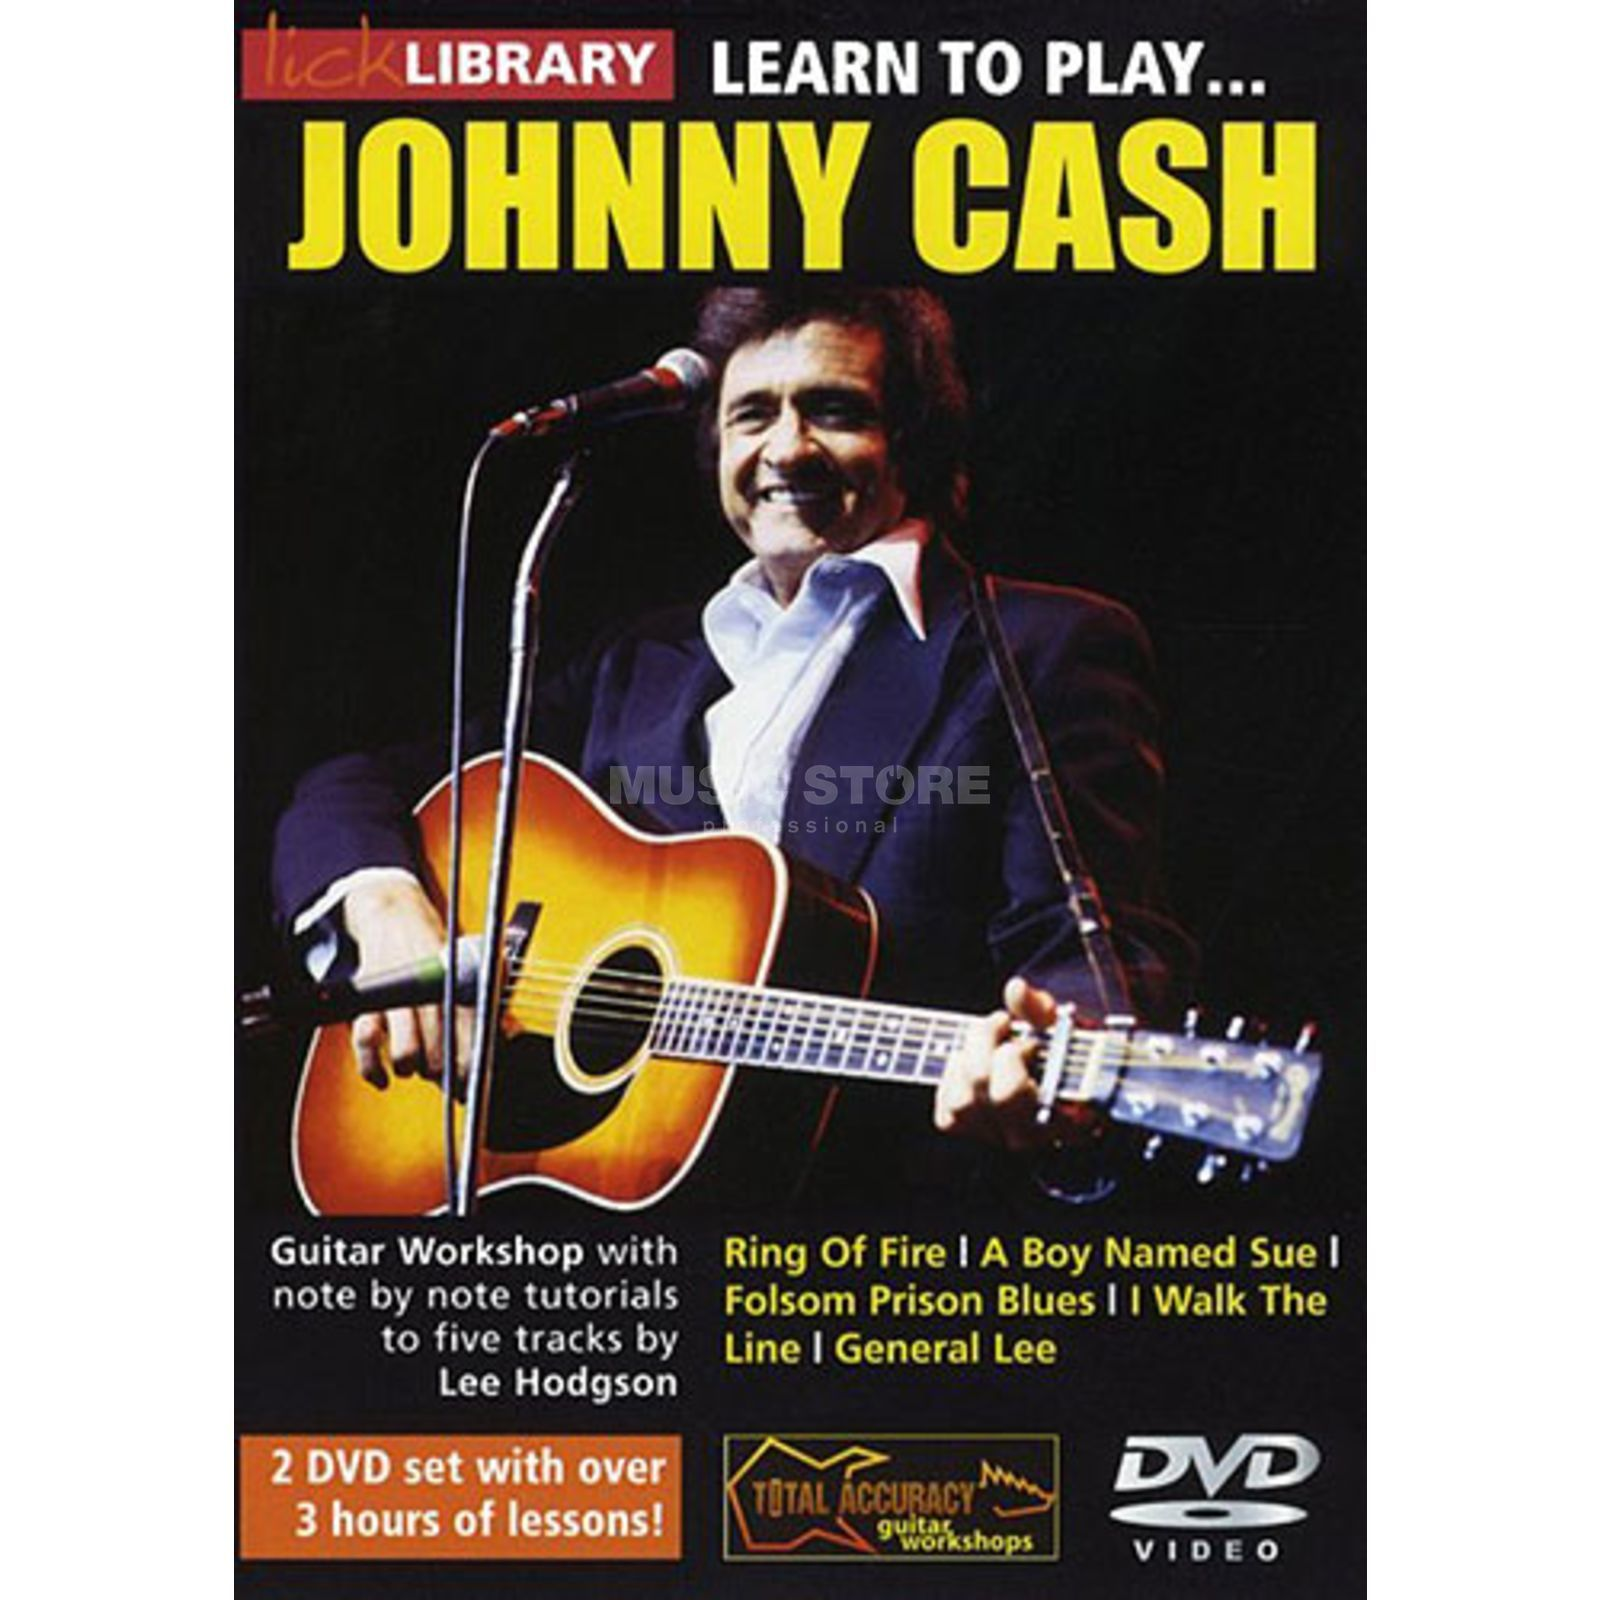 Roadrock International Lick Library: Learn To Play Johnny Cash DVD Produktbild